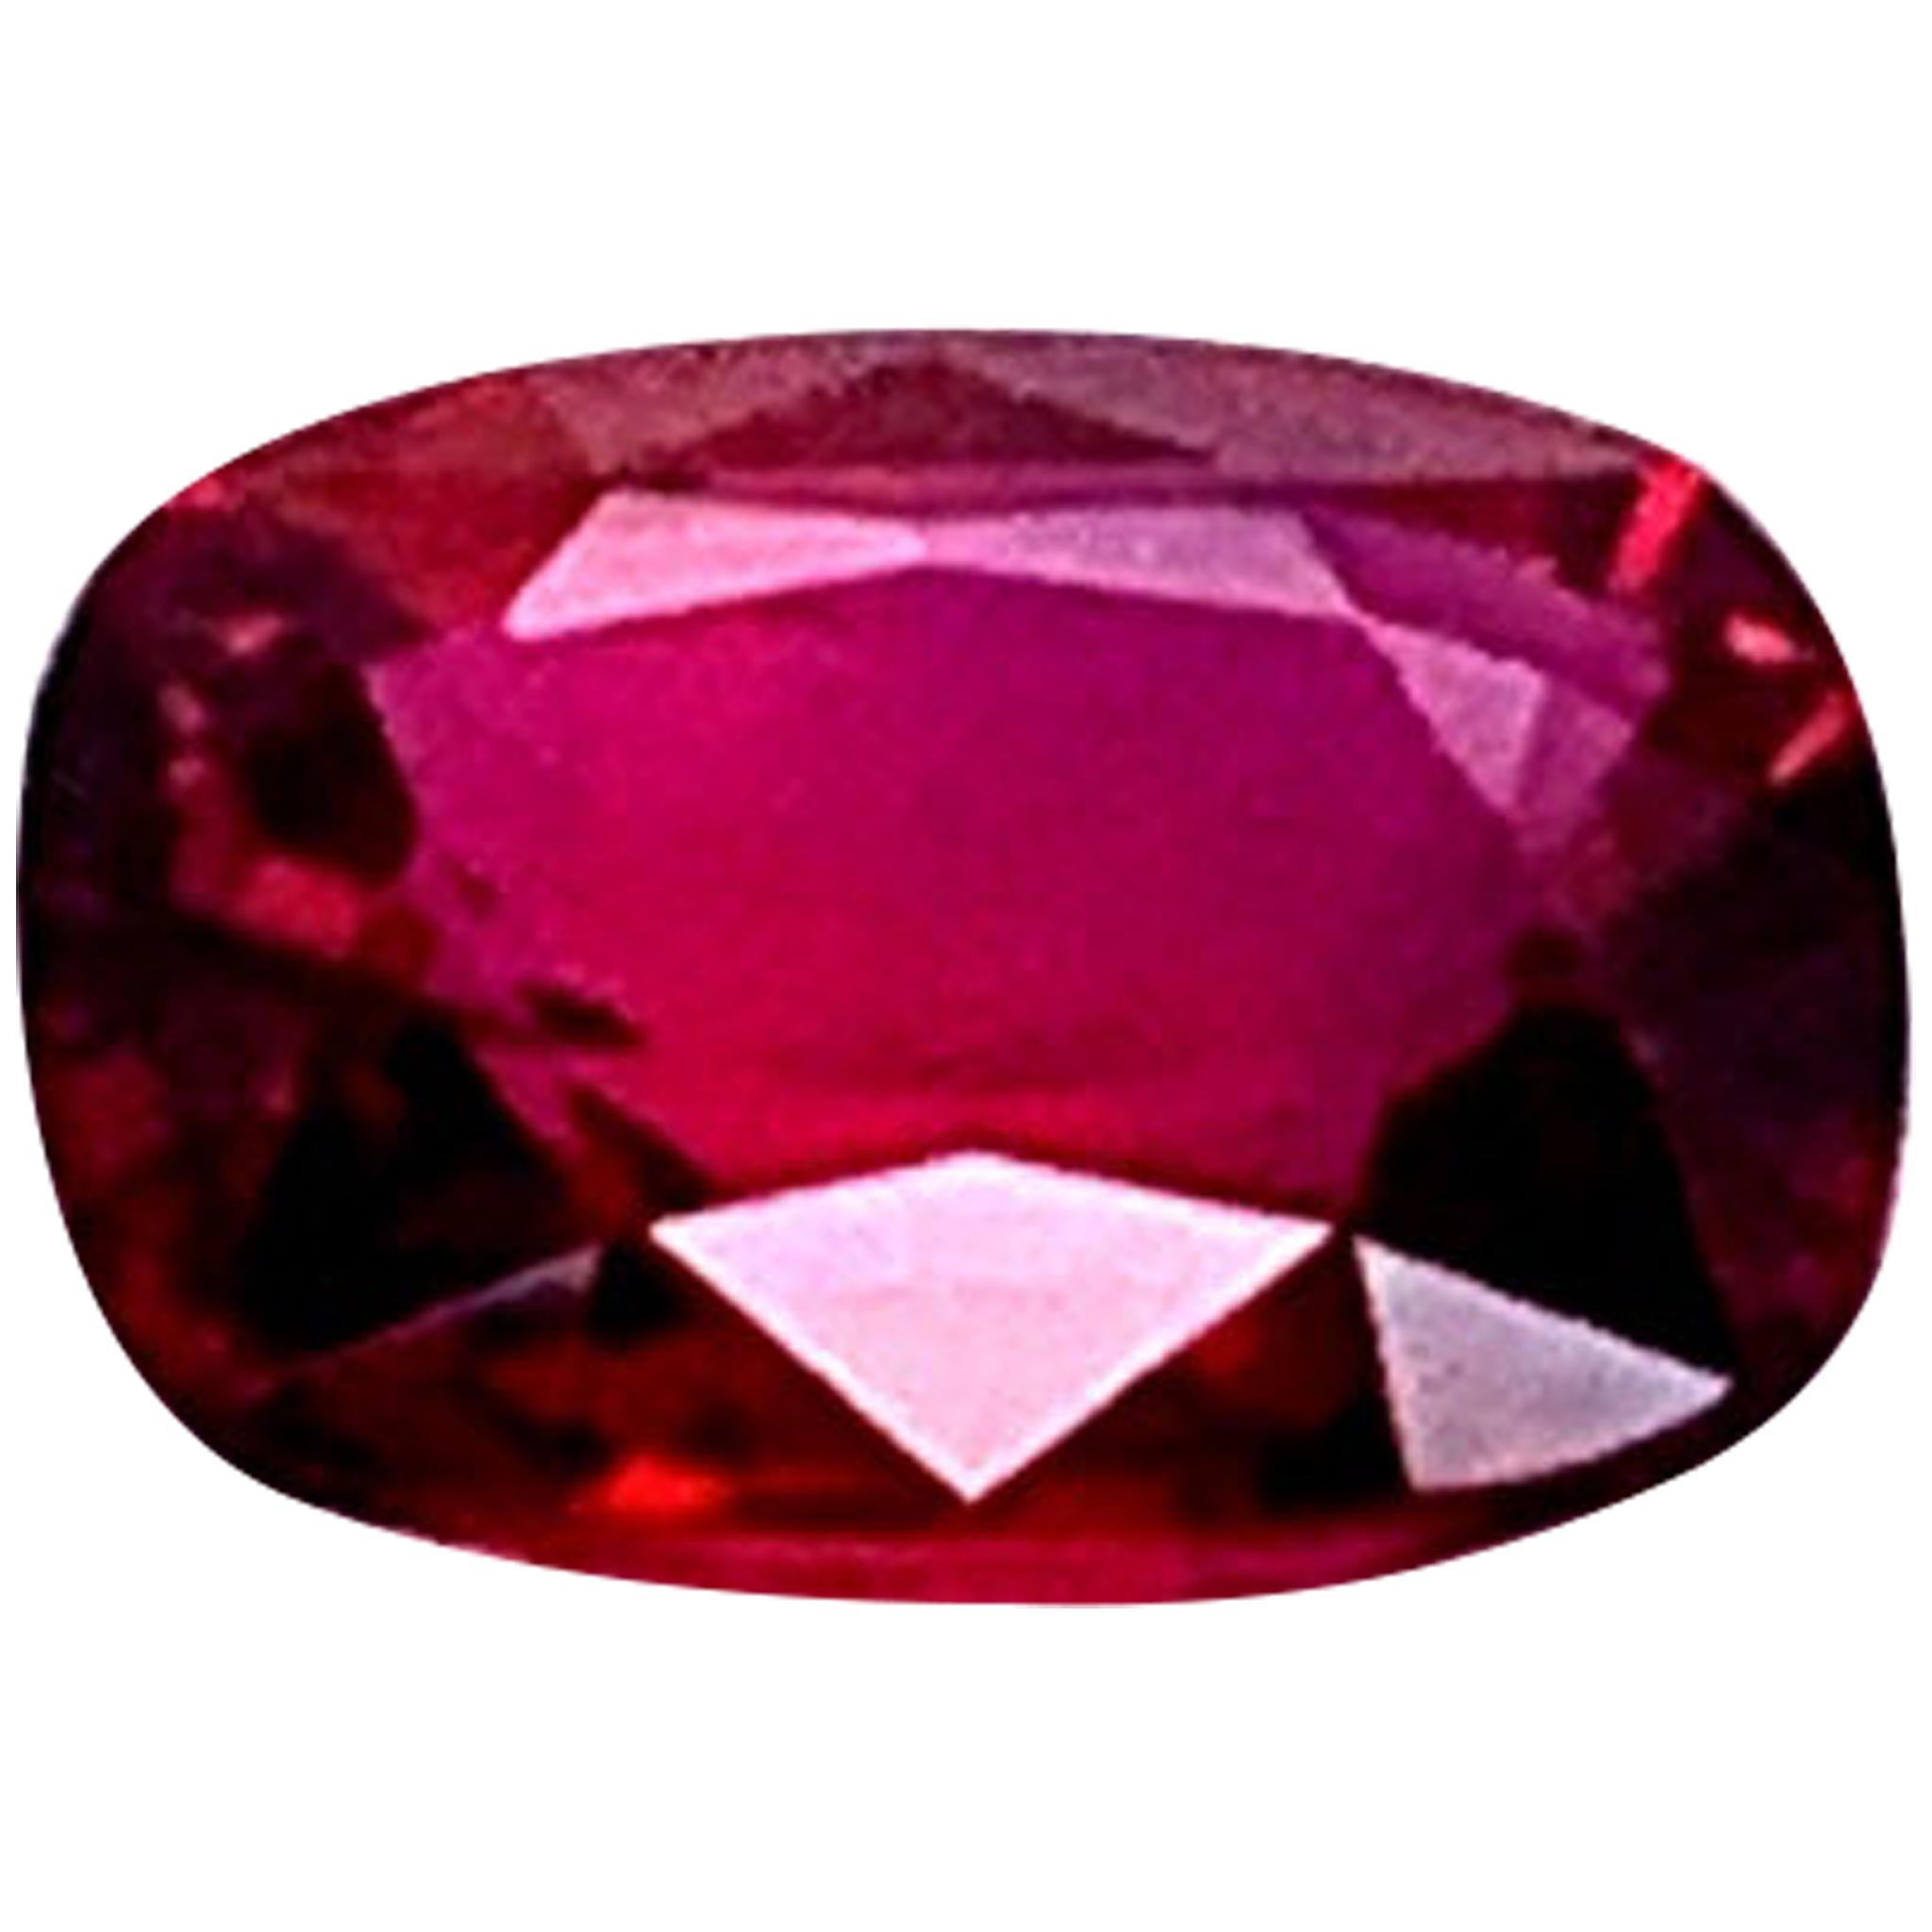 GRS Certified Natural Ruby 2.26 Carat No Heat Vivid Red